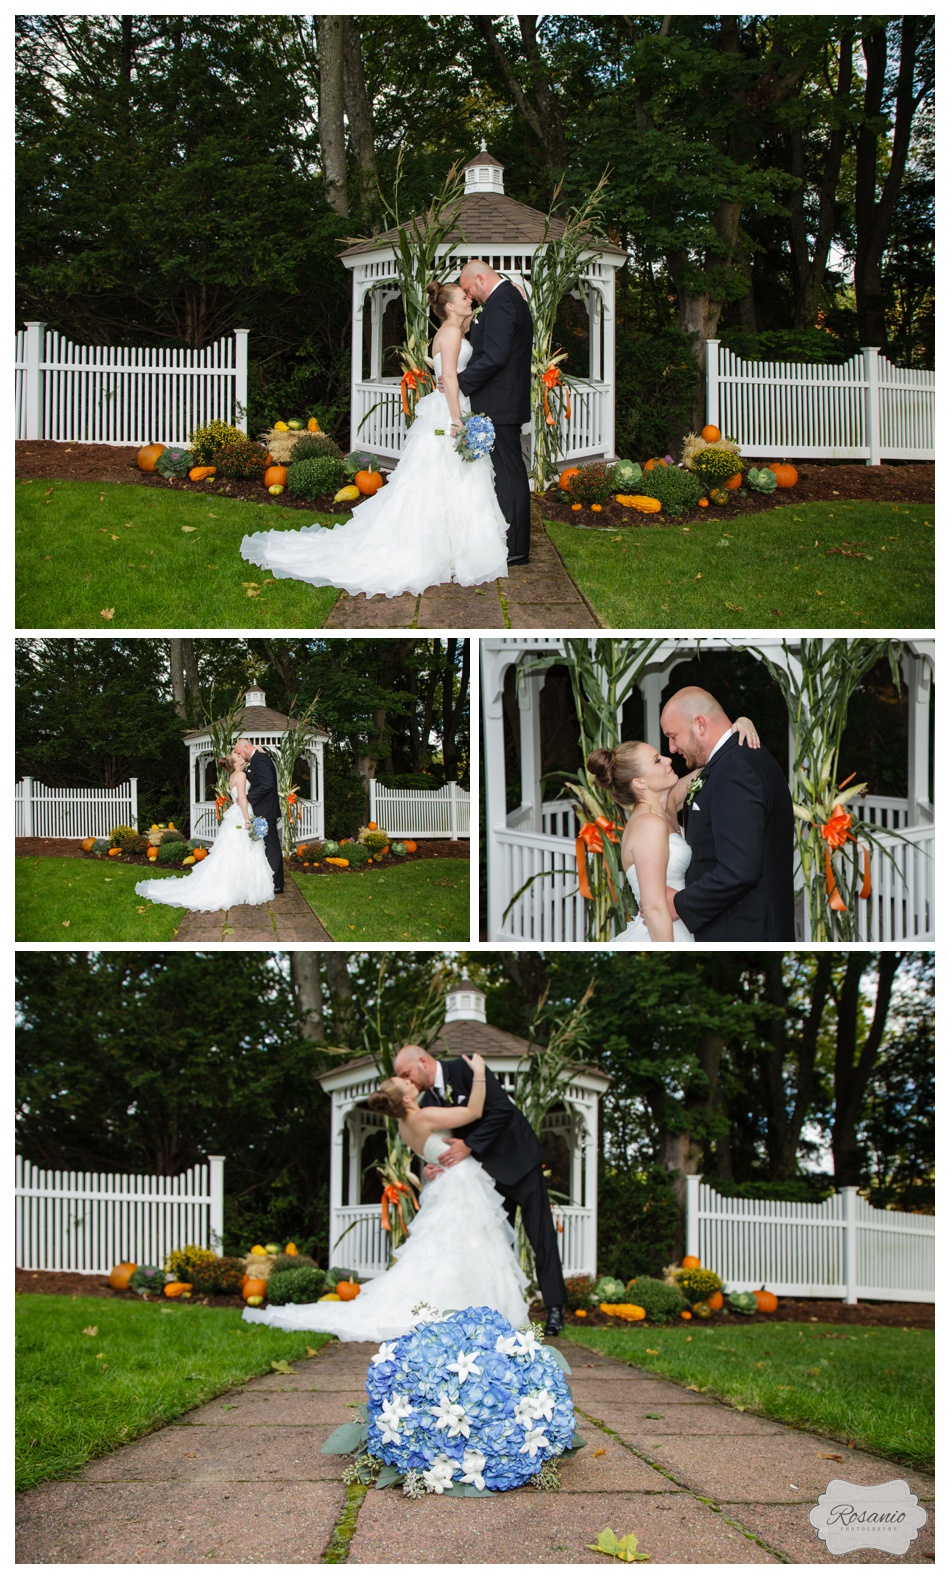 Rosanio Photography | Diburro's Haverhill MA | Massachusetts Wedding Photographer_0069.jpg